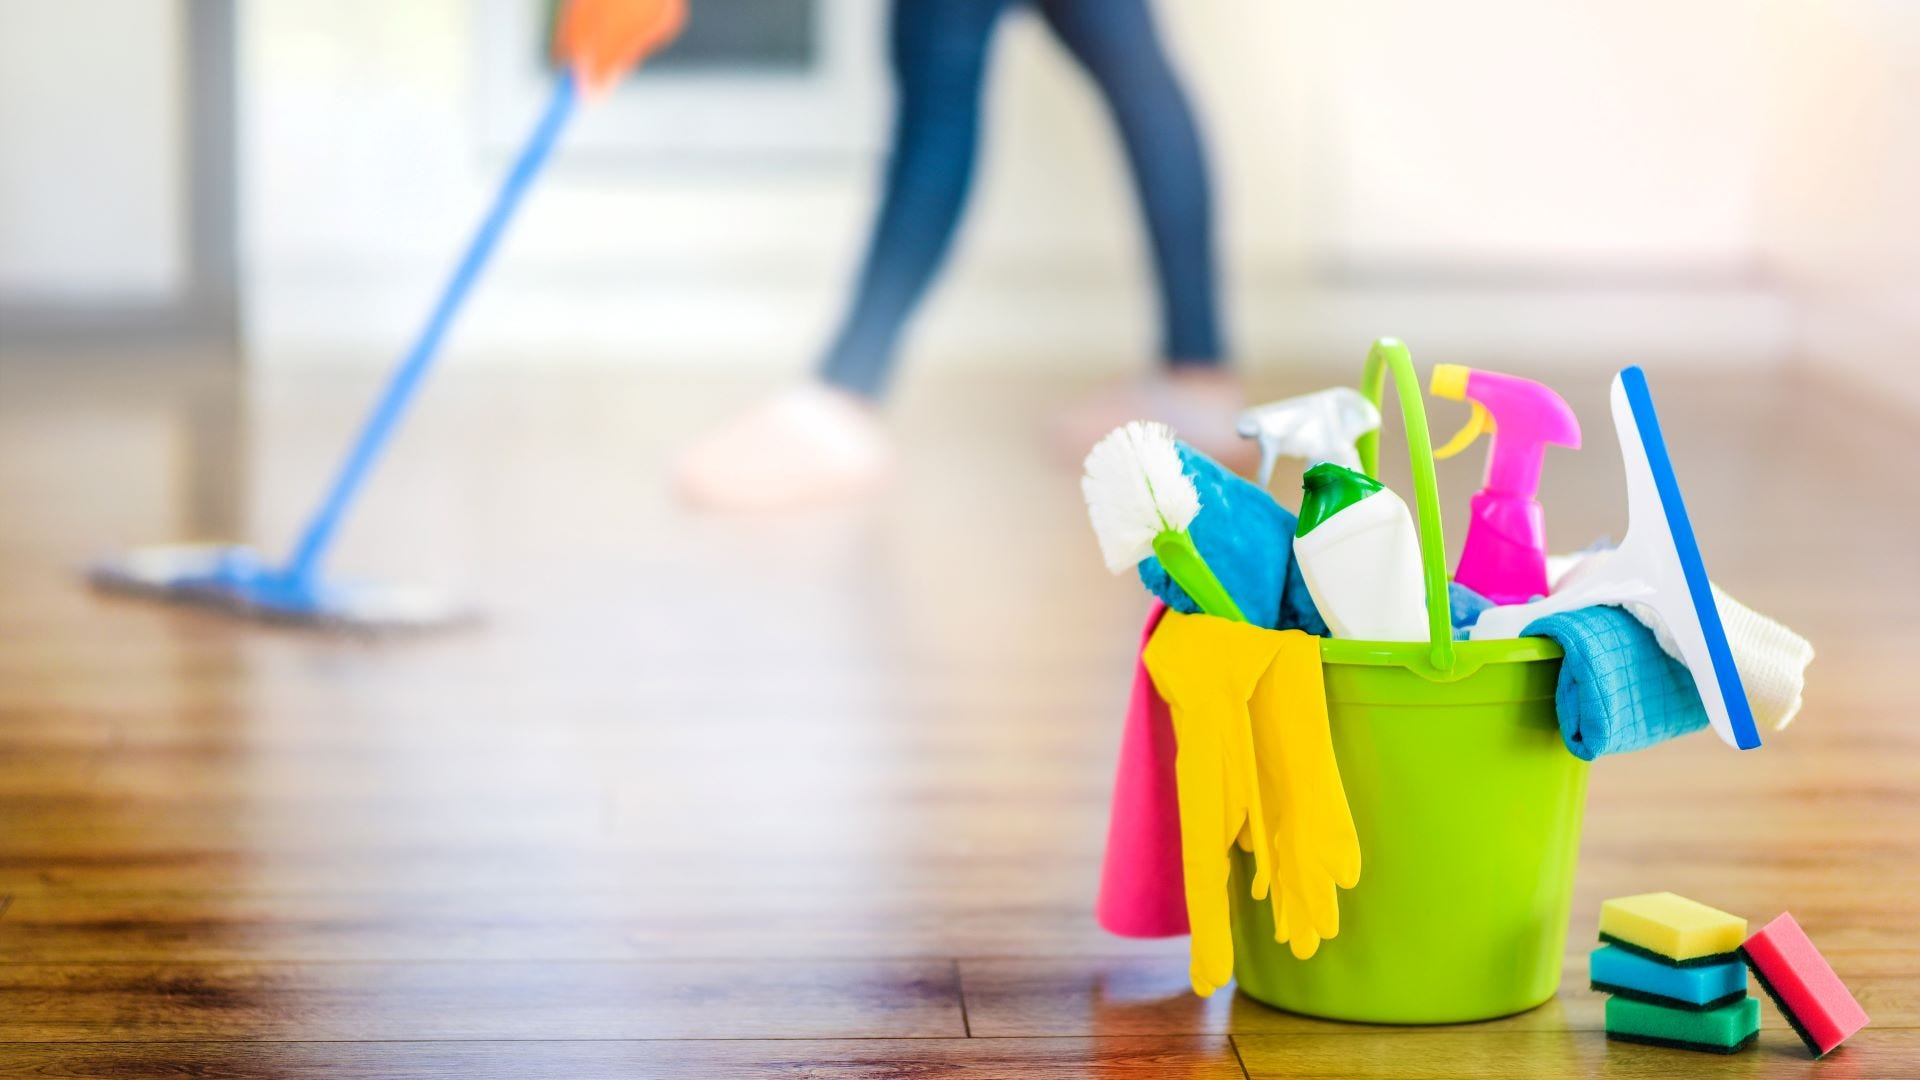 Cleaning supplies in a bucket with someone mopping in the background.